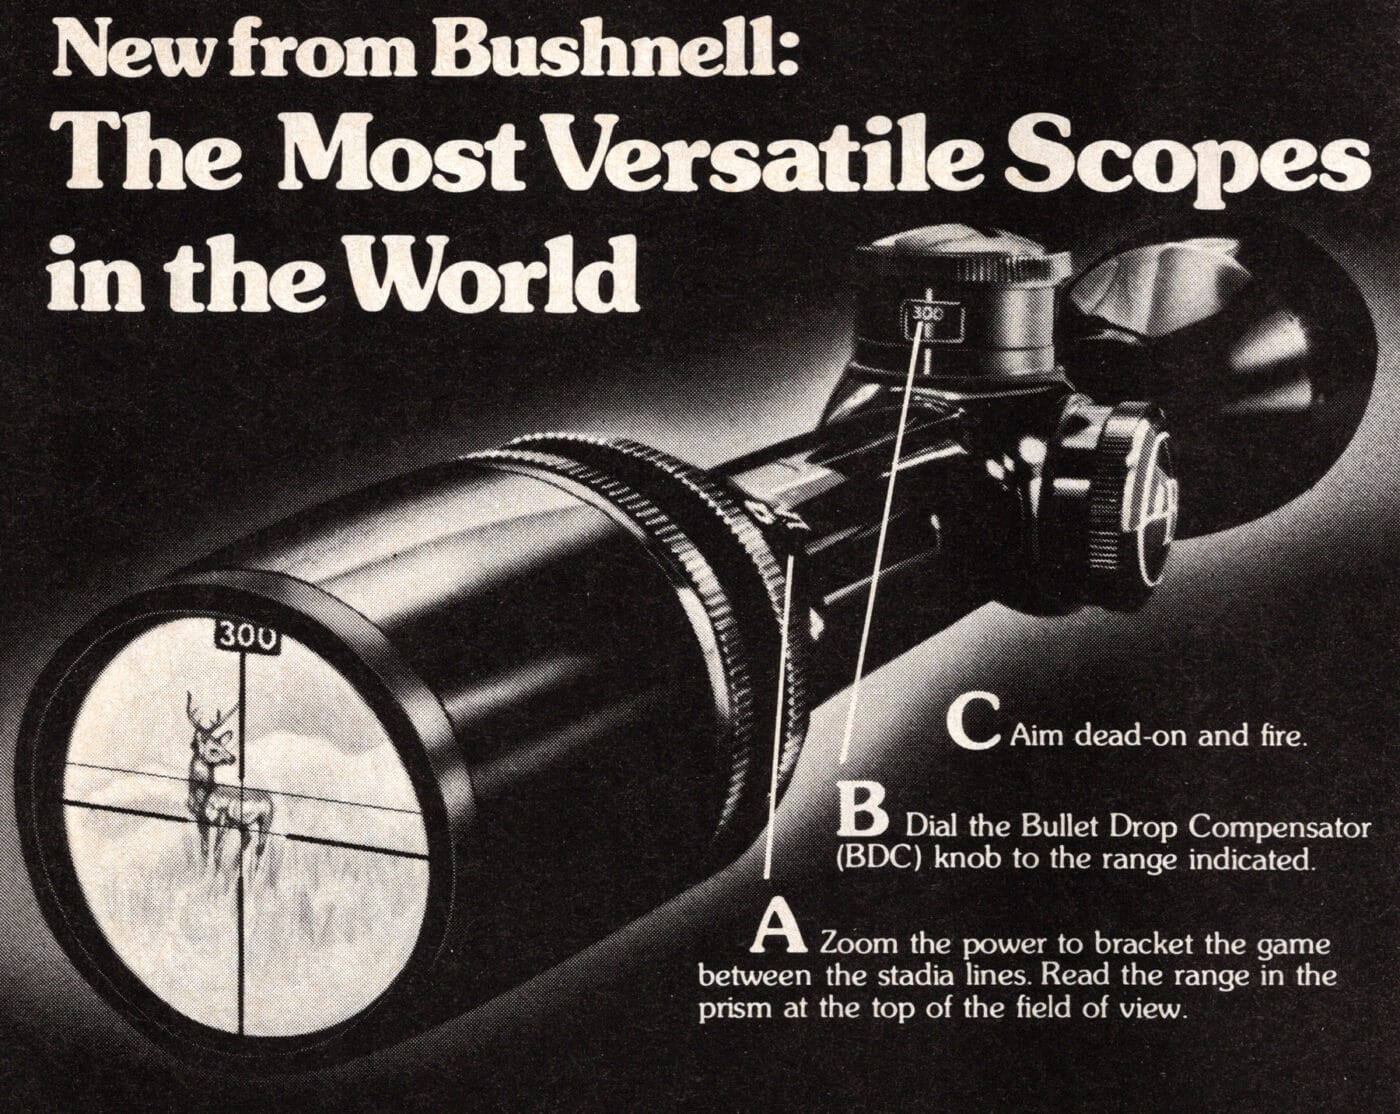 1979 ad with Bushnell BDC scope for hunting